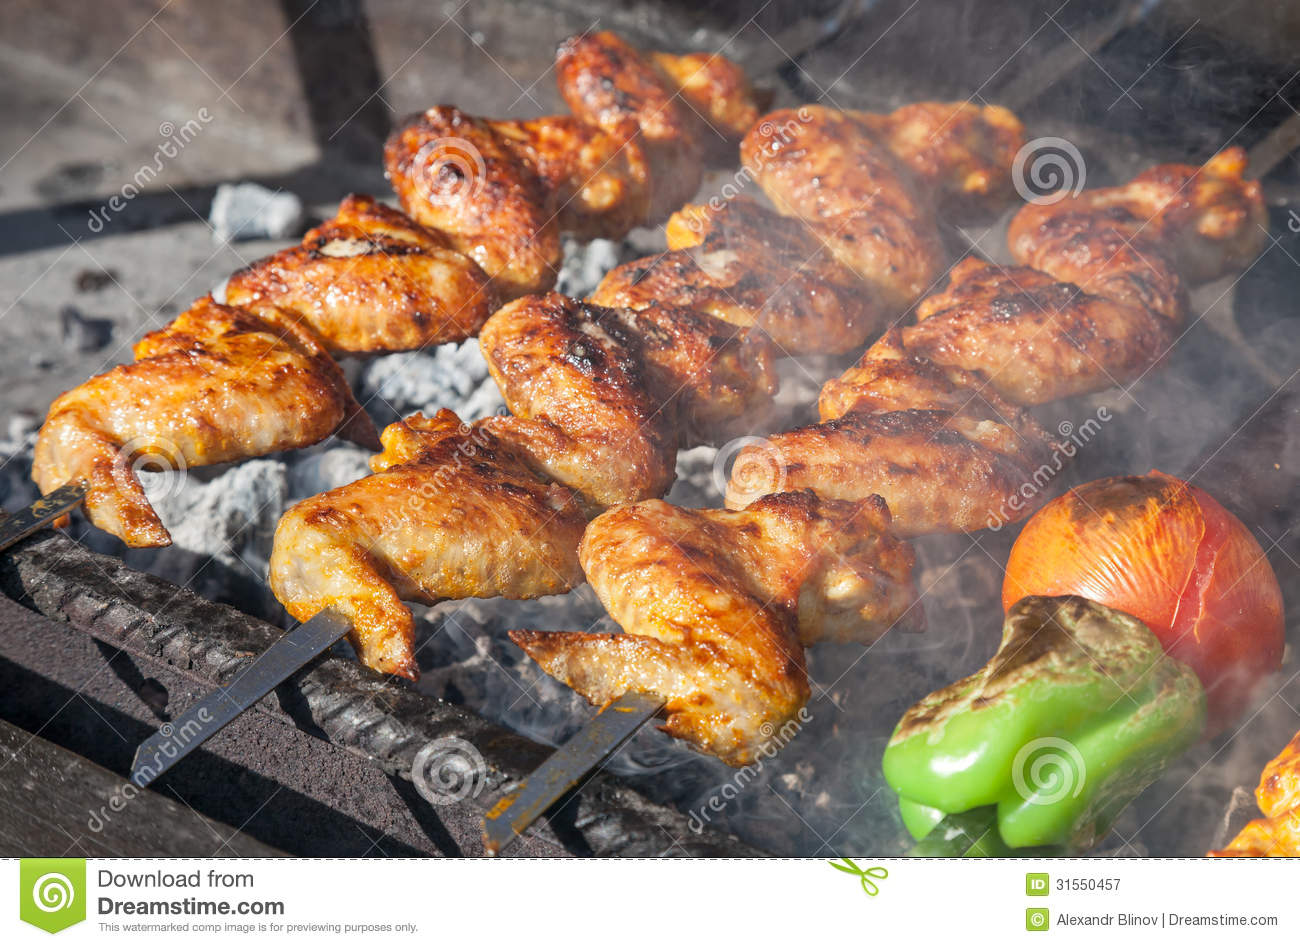 Juicy slices of meat prepare on fire